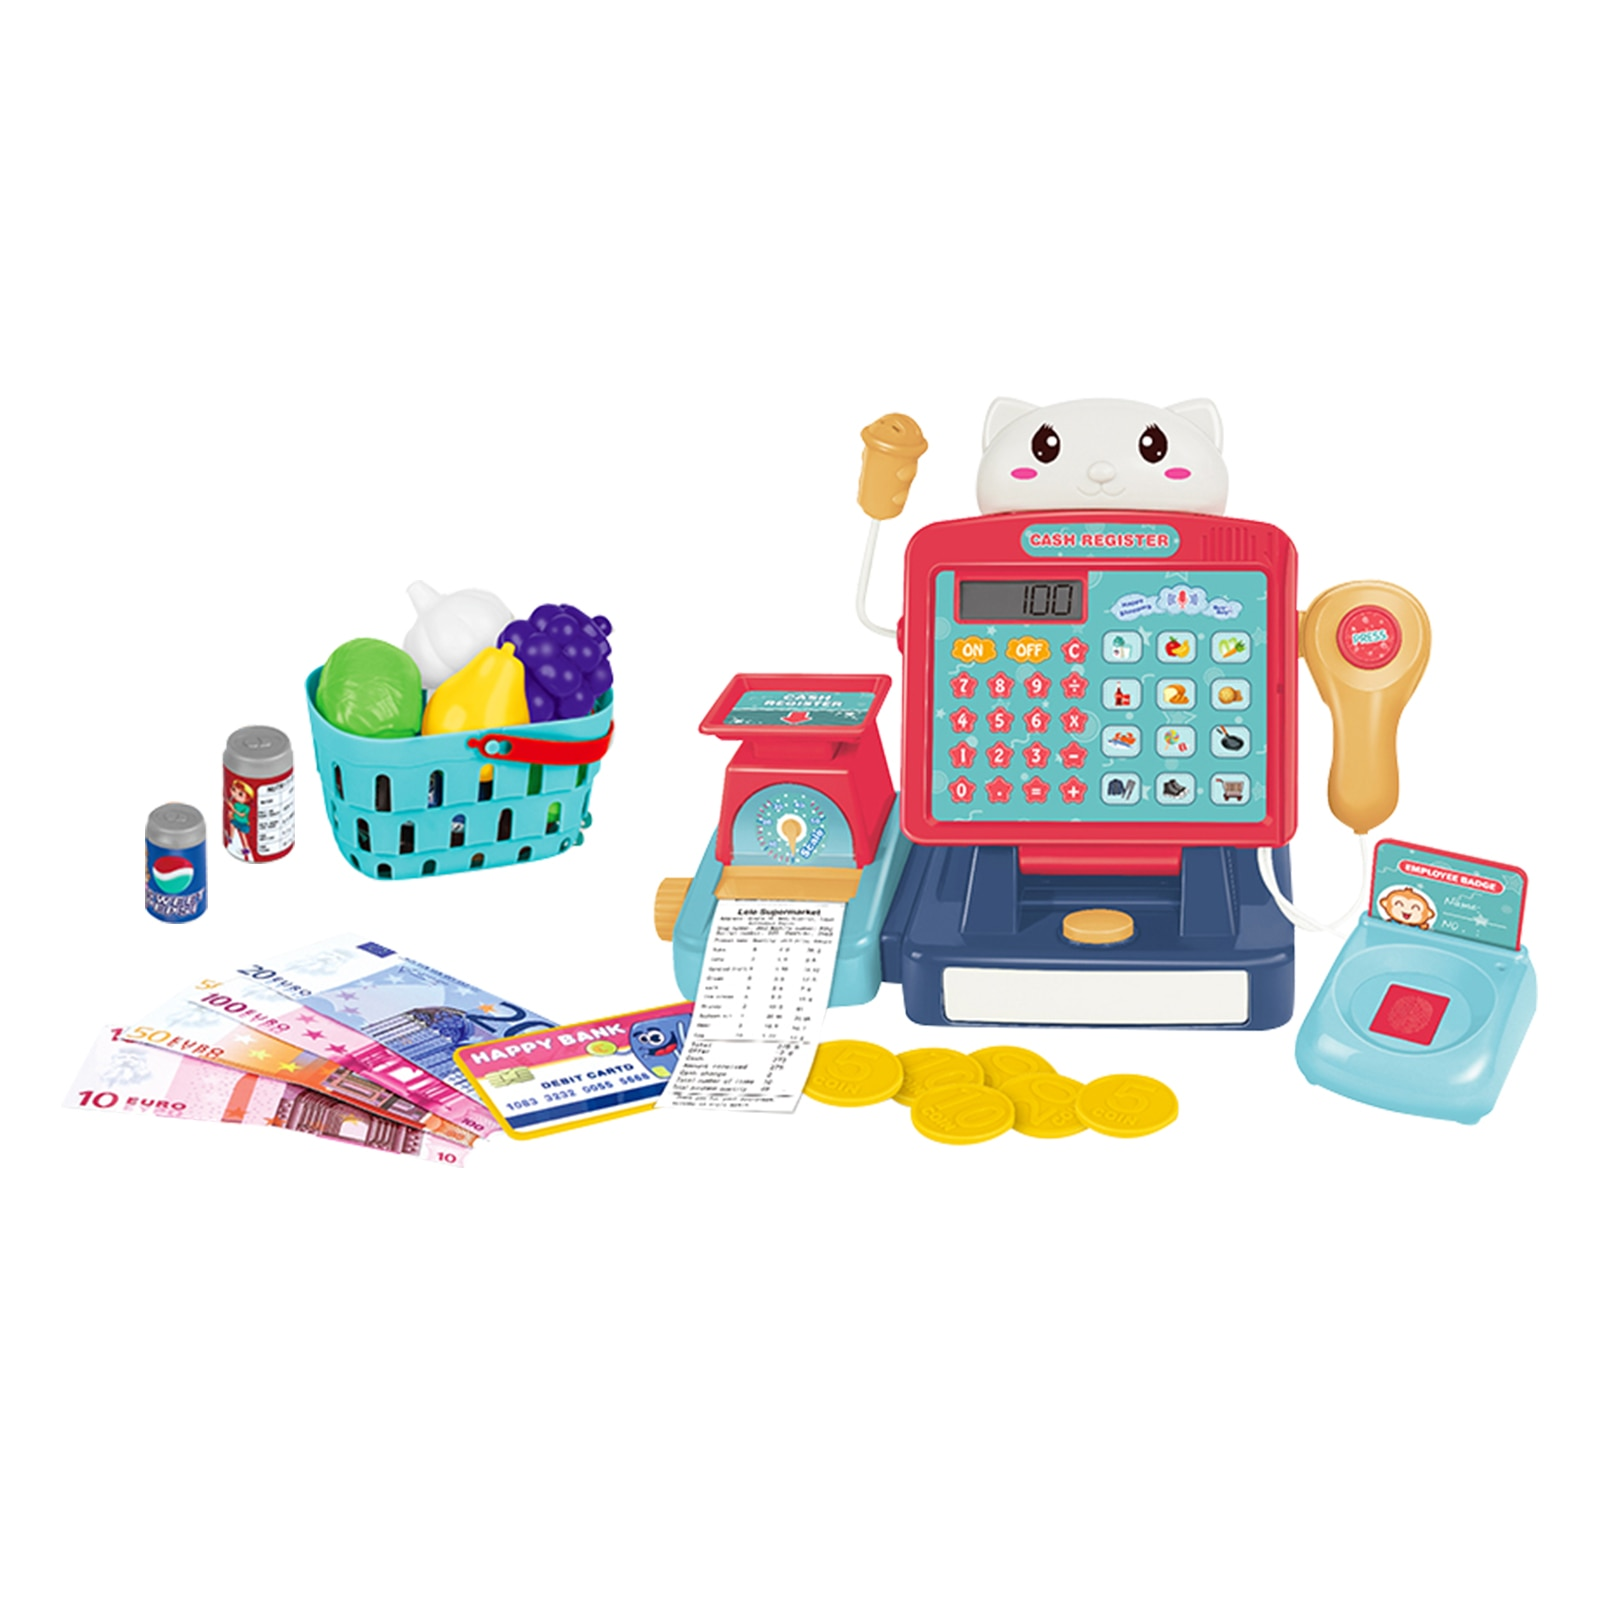 25Pcs/set Mini Simulated Supermarket Electronic Cash Register Toys Set Calculator Scanner Counter Cashier Role Play Pretend Toys connect the pos machine before the use of cash used in supermarket restaurant cashier ek330